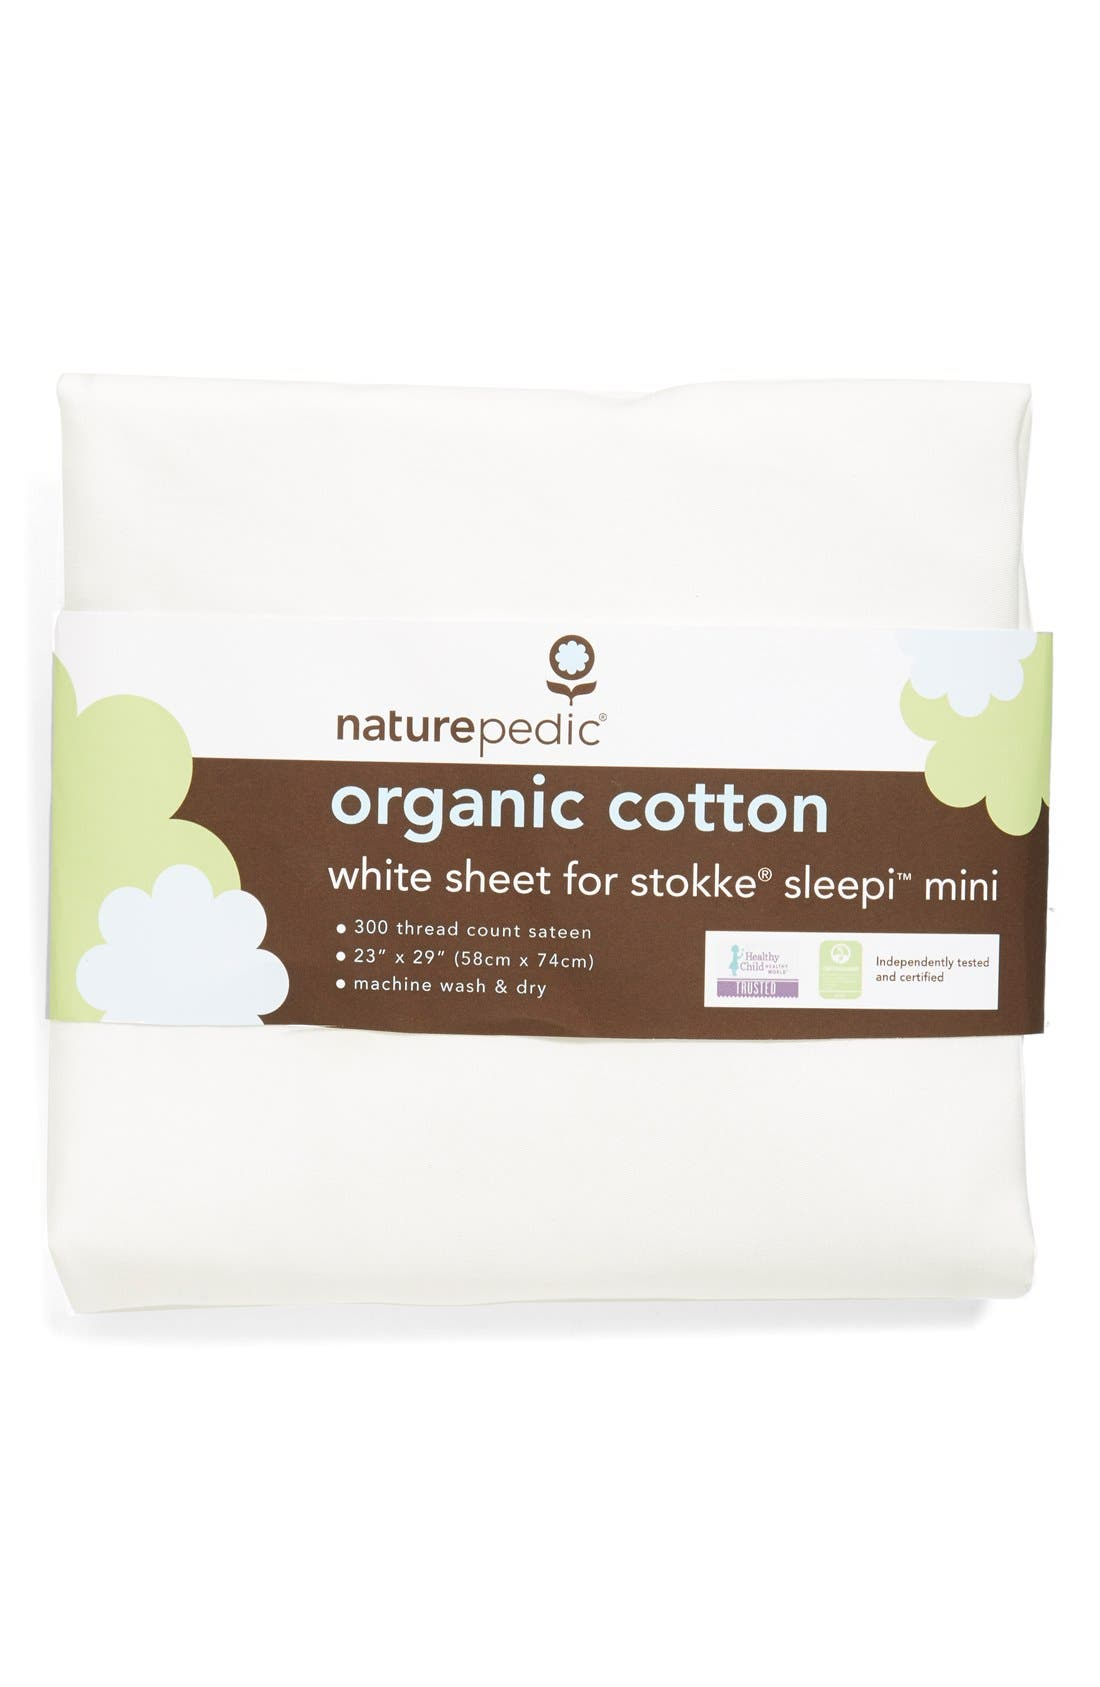 Naturepedic 300 Thread Count Organic Cotton Oval Crib Sheet for Stokke Sleepi Mini